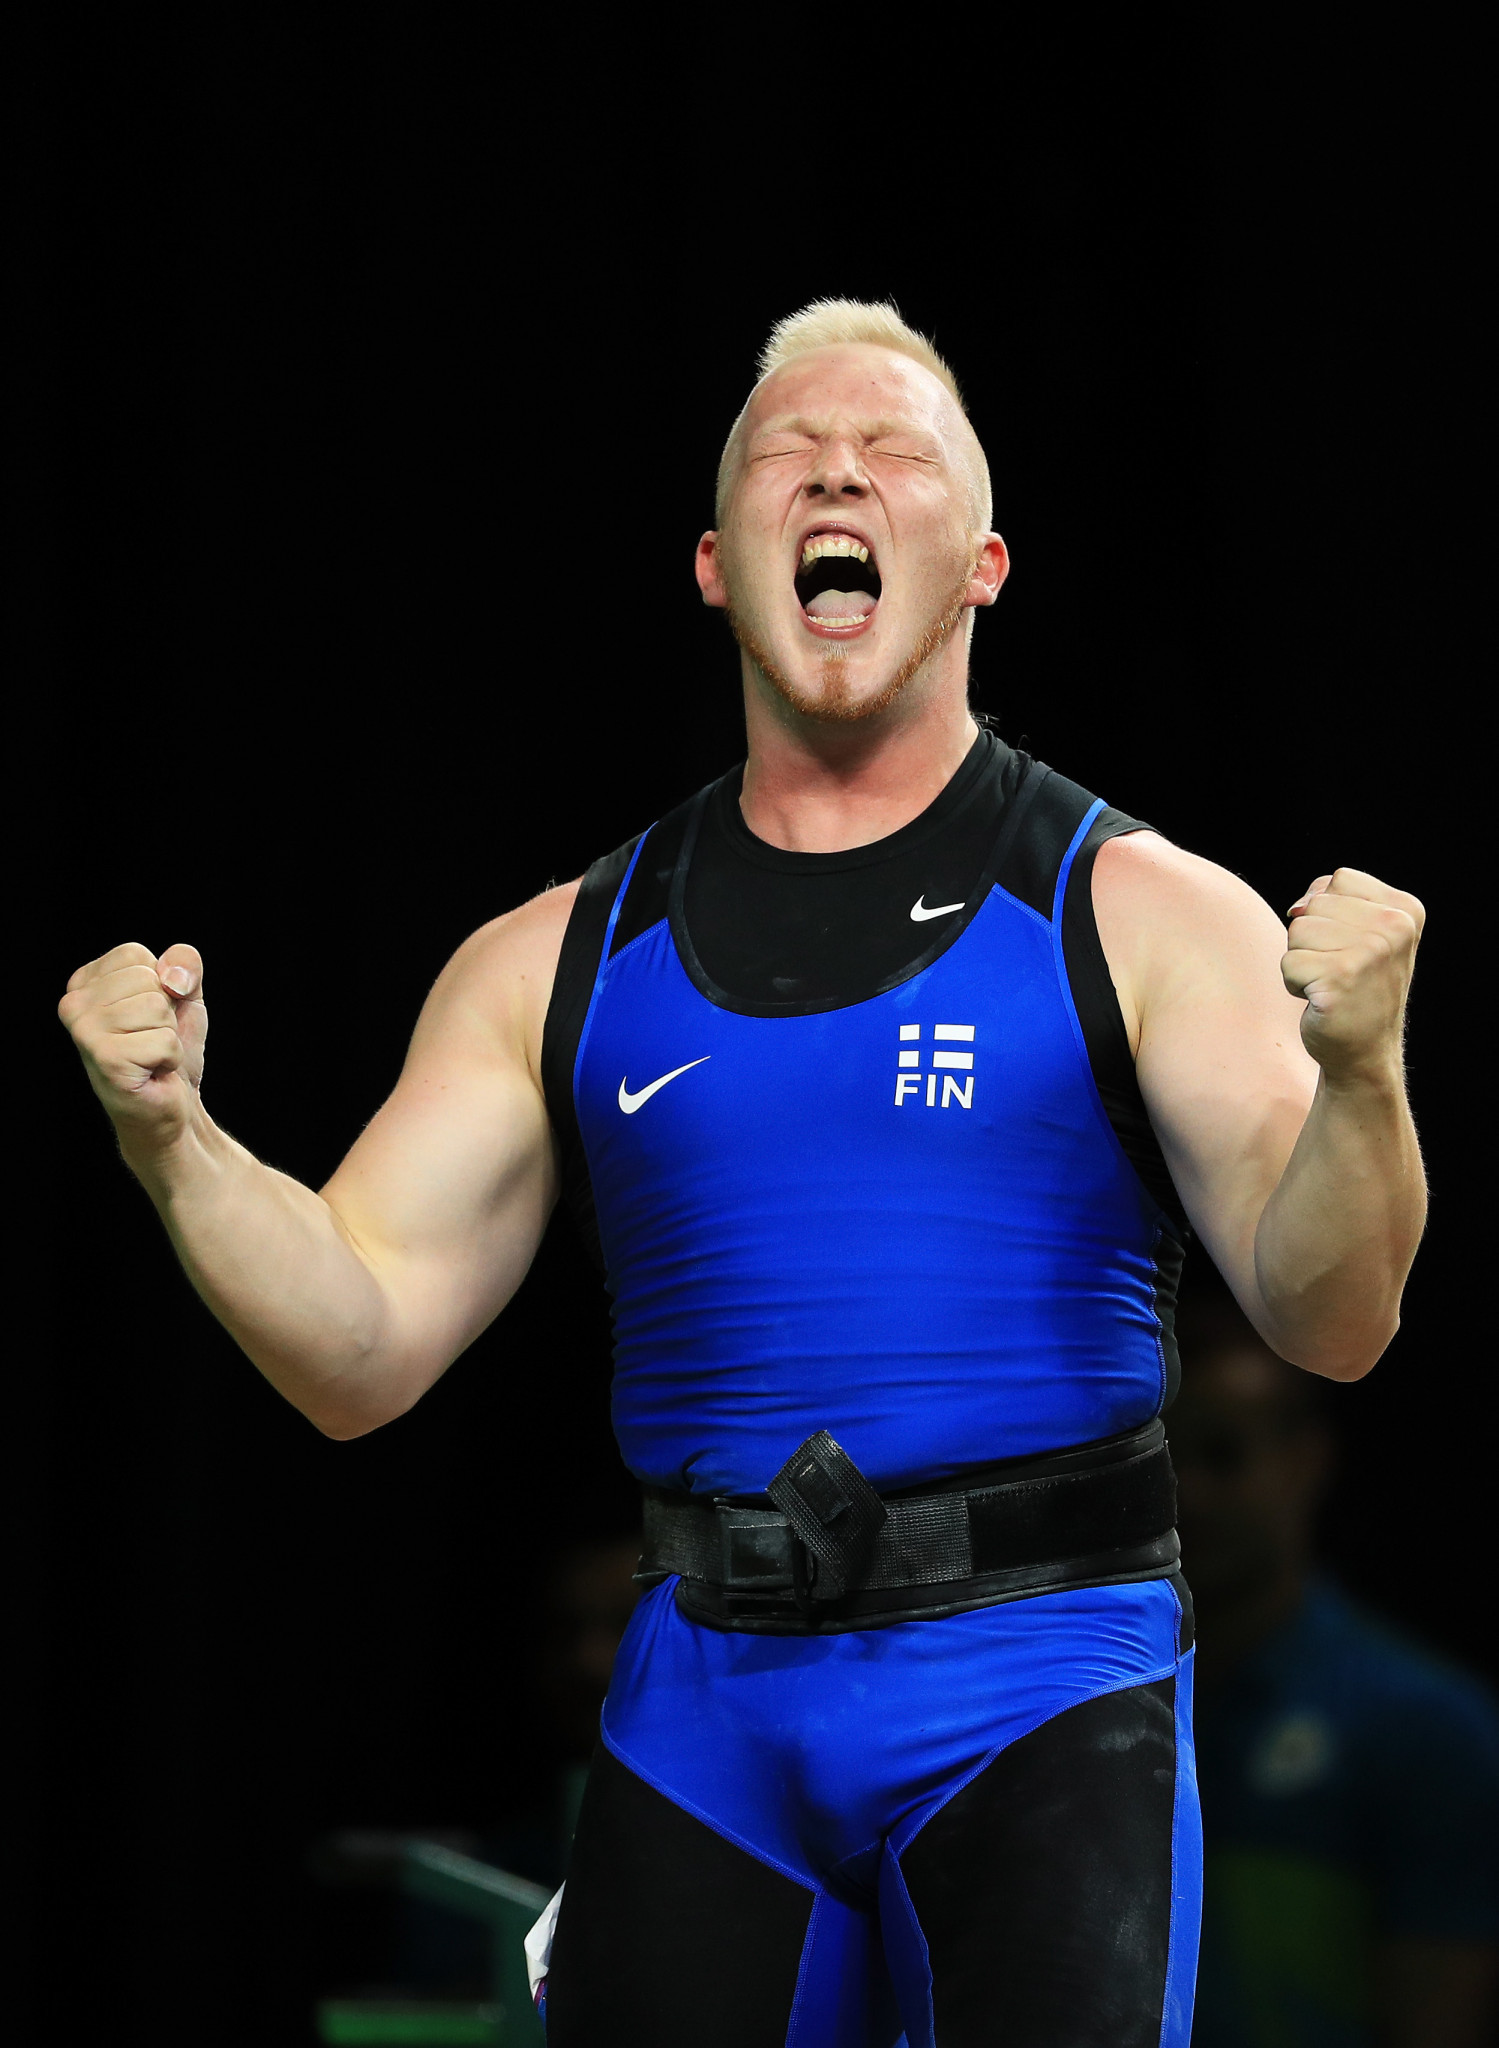 The Hall of Fame recognises the best Finnish weightlifters ©Getty Images